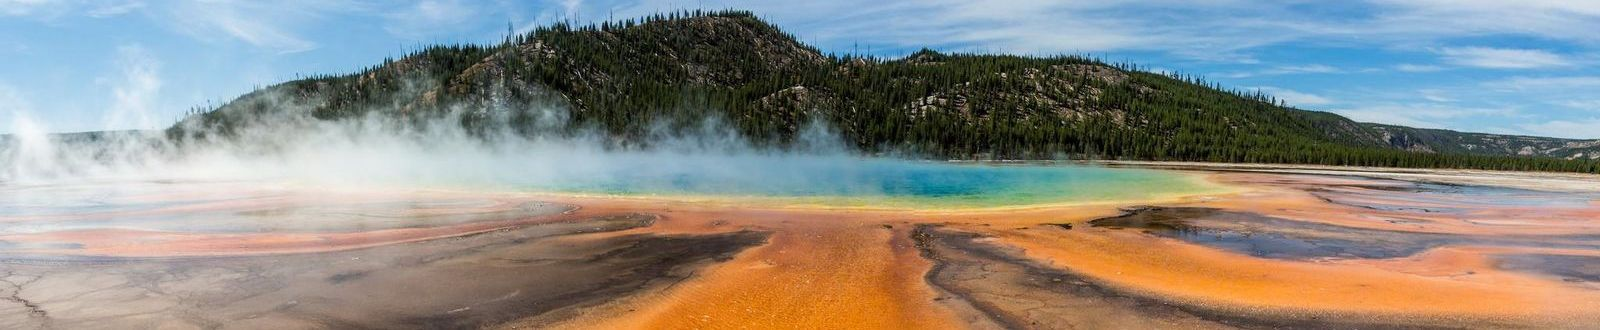 Le Parc National du Yellowstone - West Side